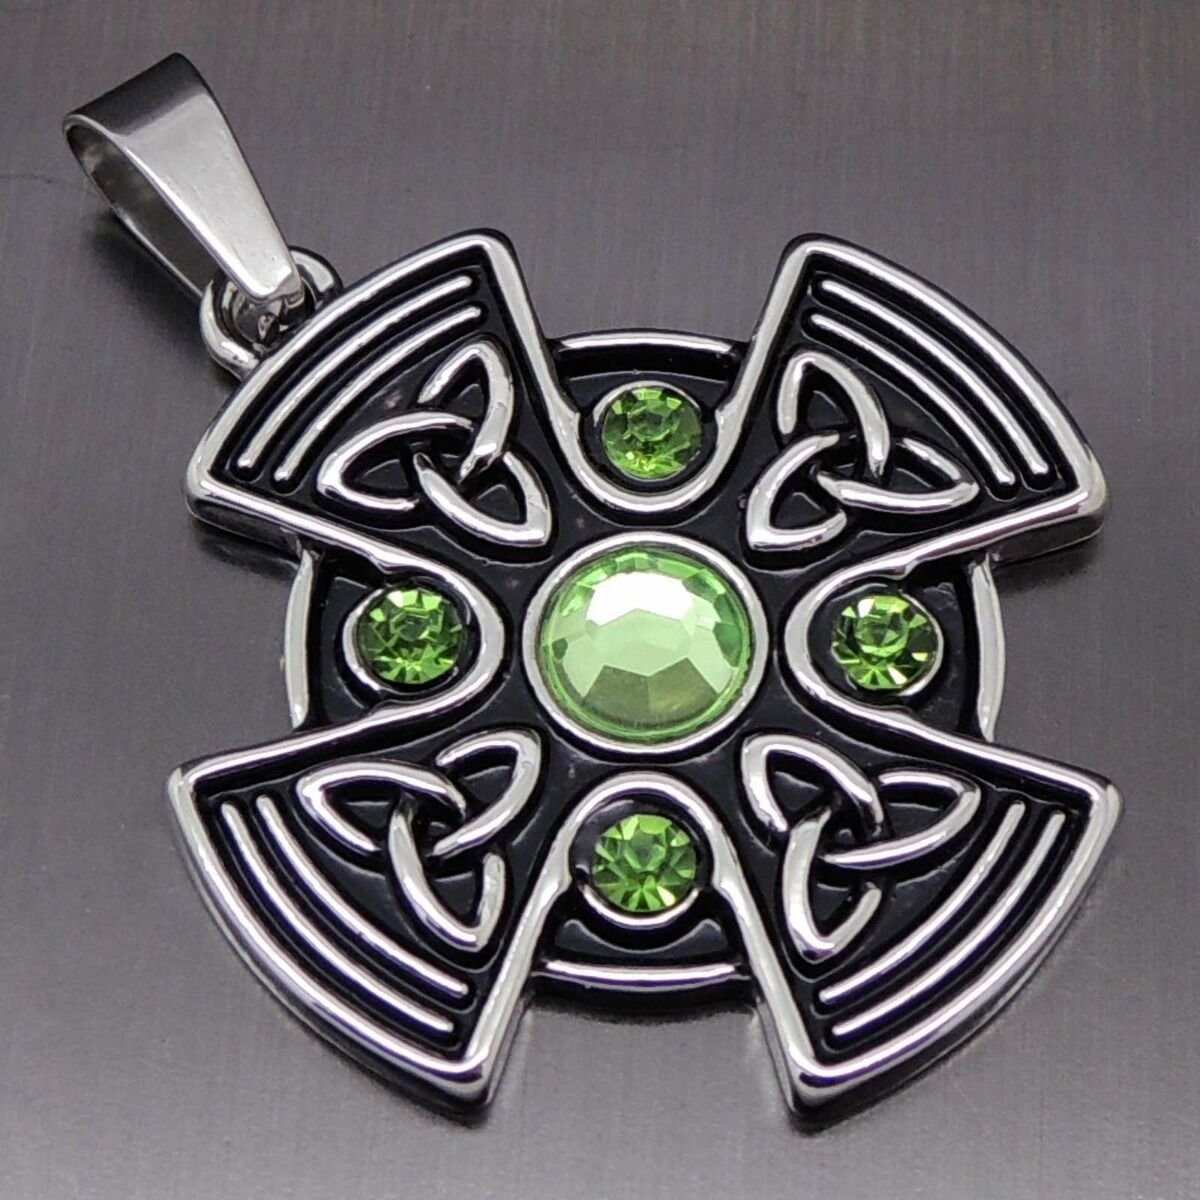 Celtic green sun cross pewter pendant 20 necklace pp 295 g ebay picture 1 of 3 aloadofball